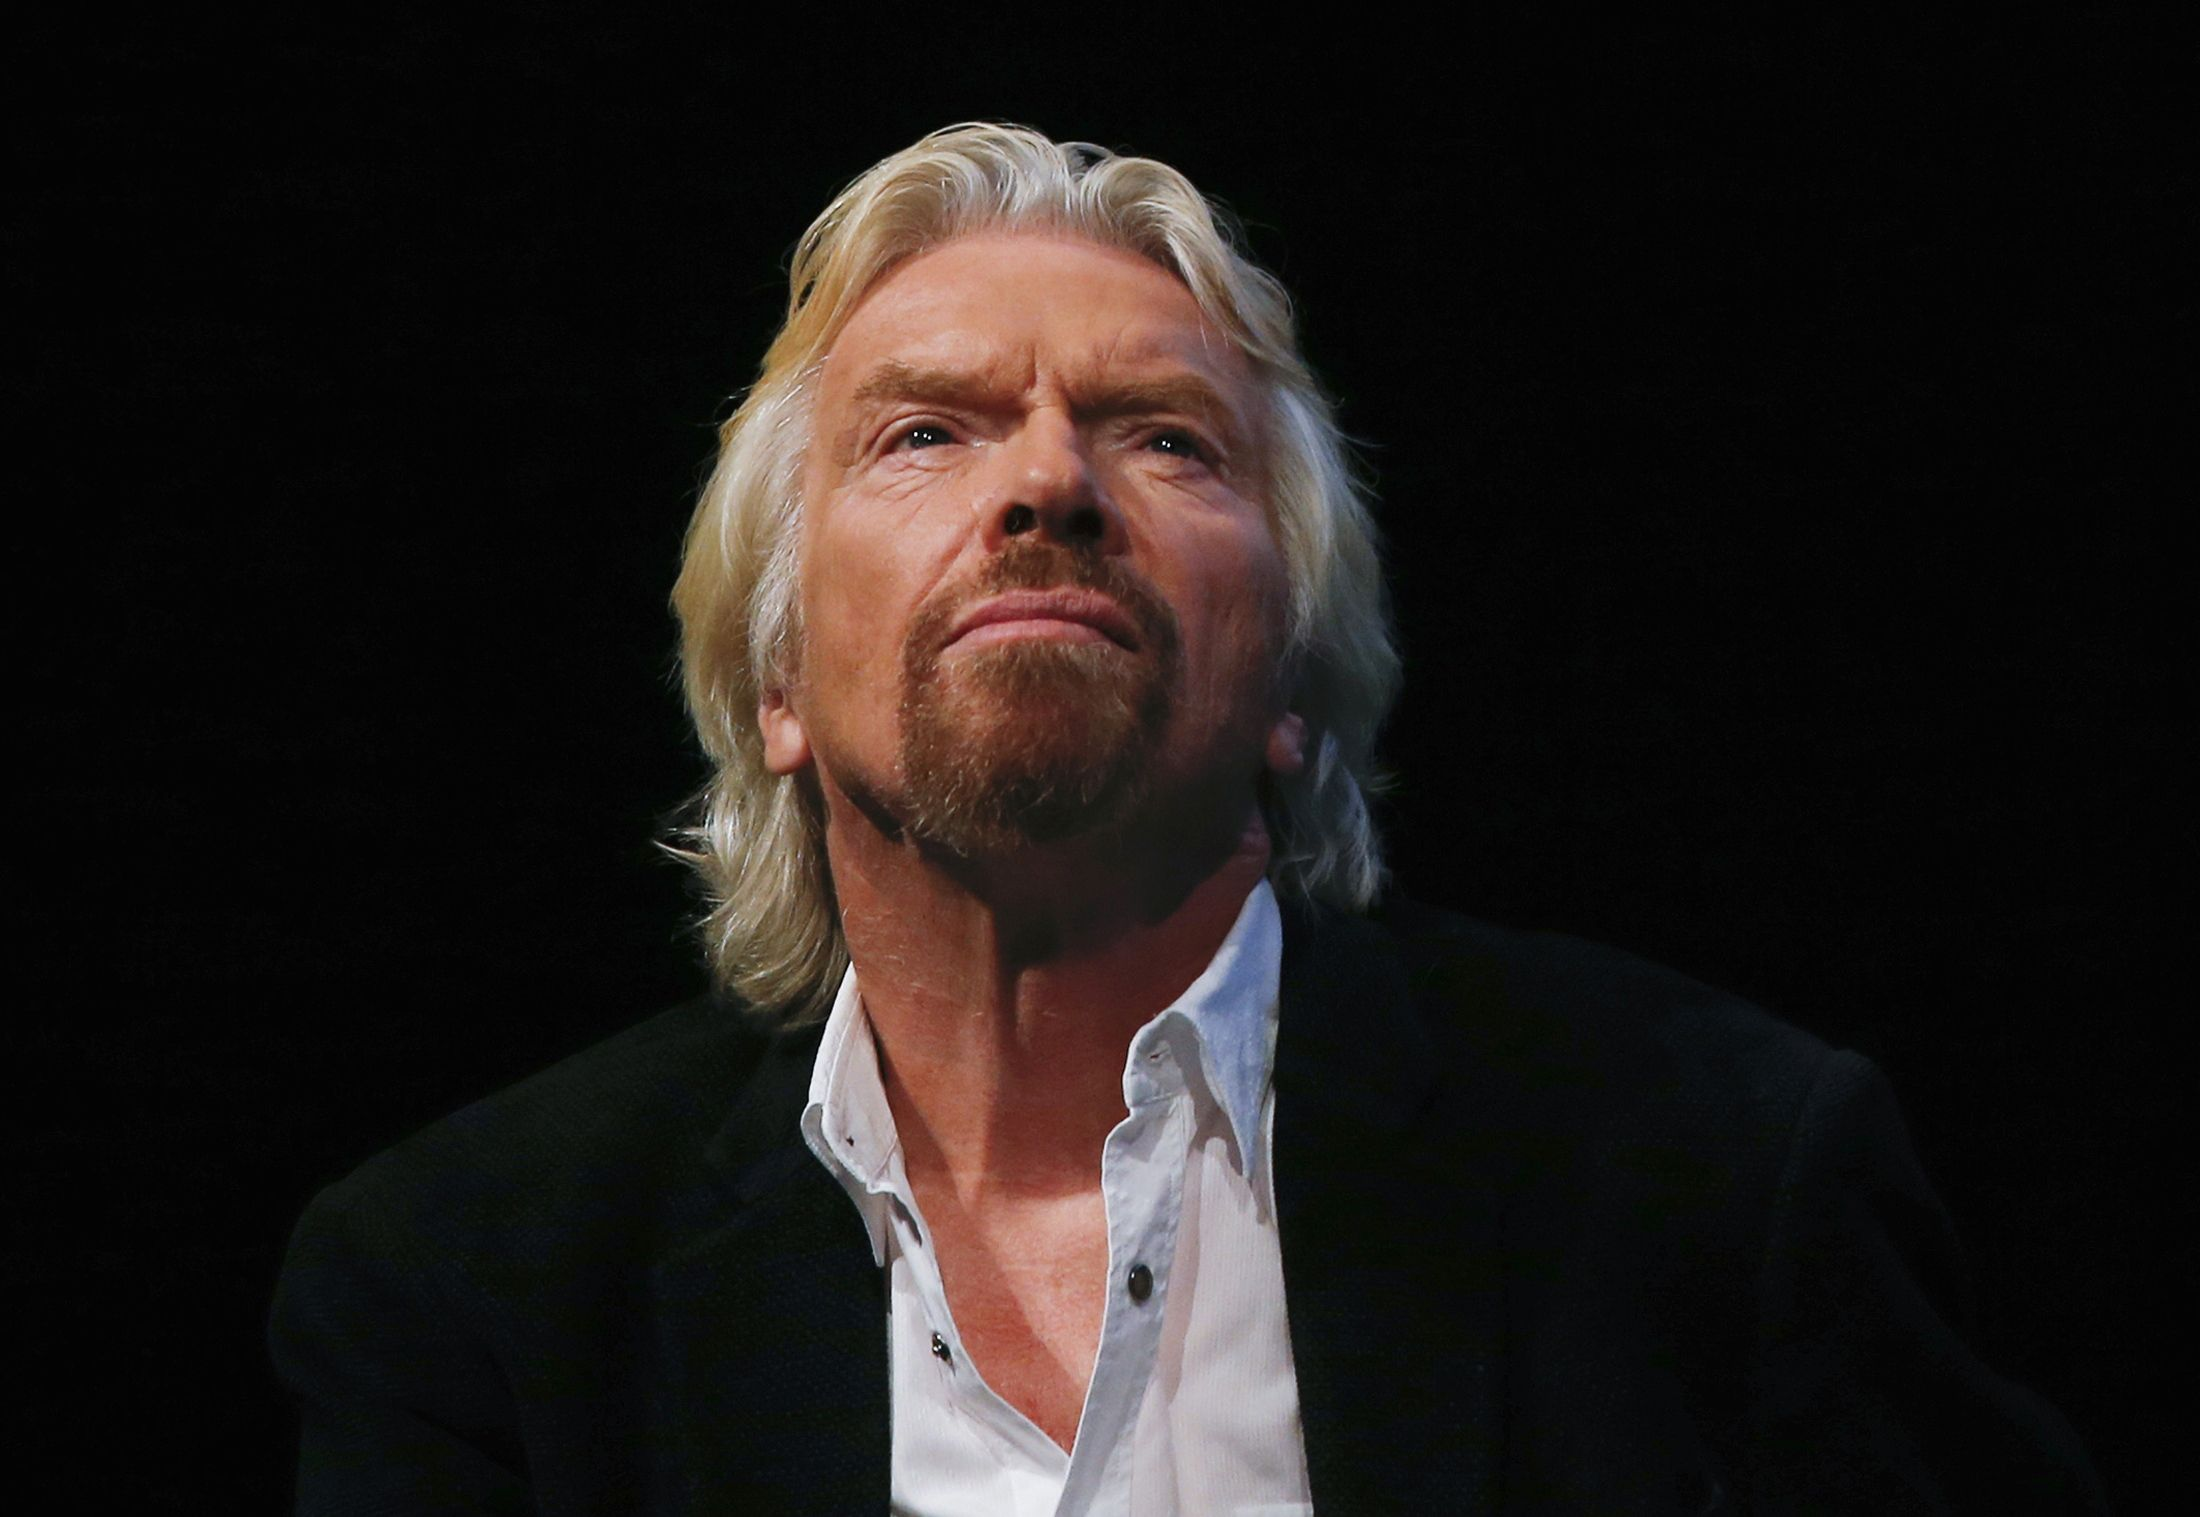 Richard Branson Missouri